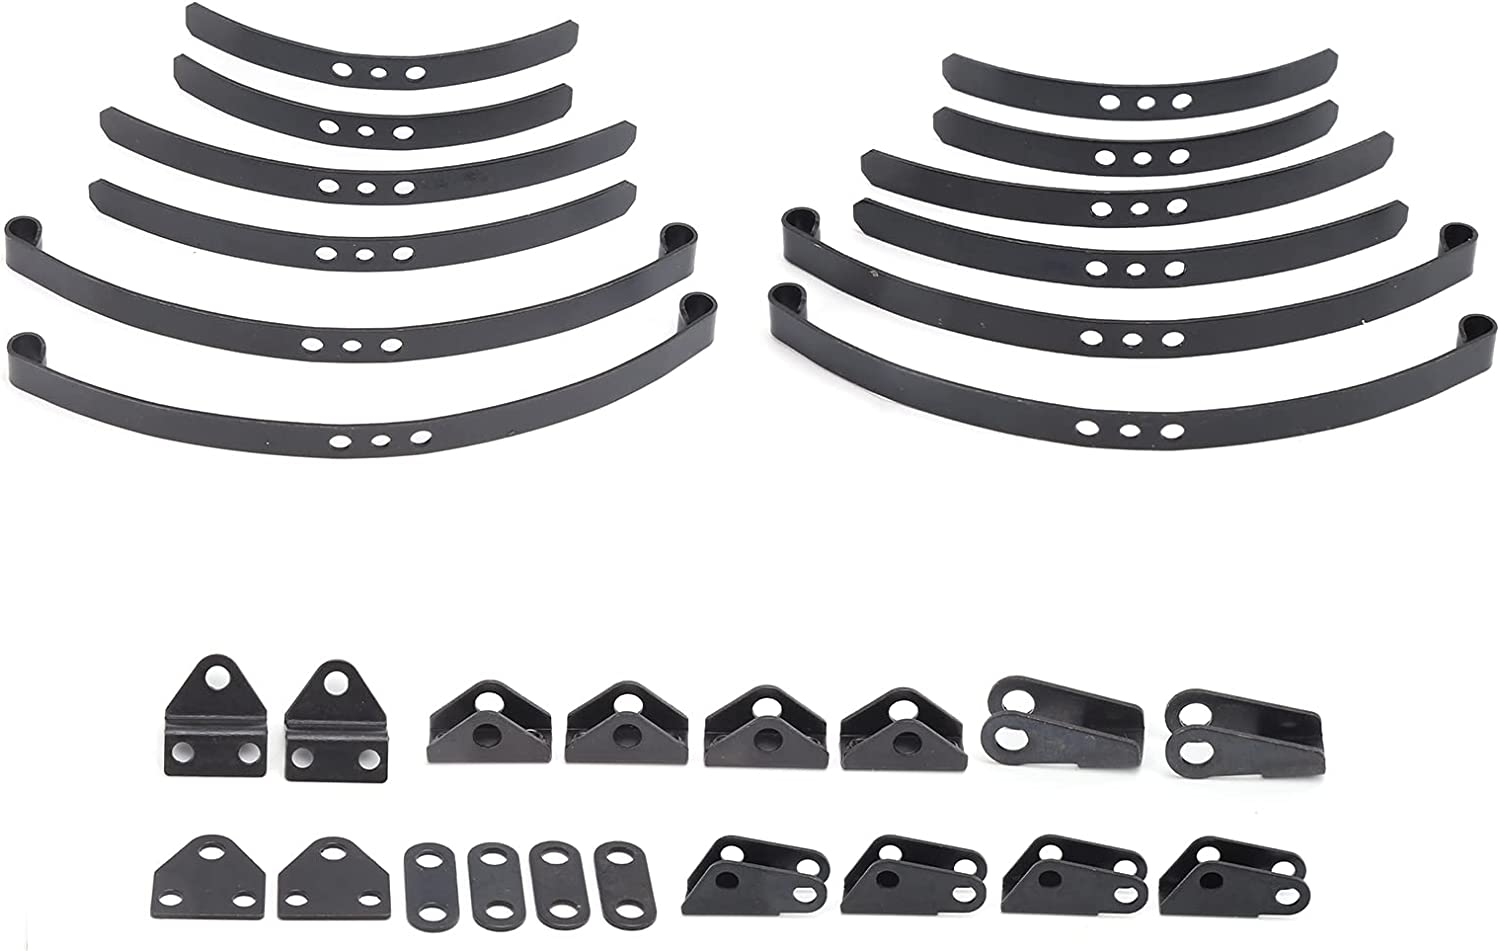 VGEBY RC Front Rear Leaf Type Recommended Fashion 14 System Spring Suspension for 1